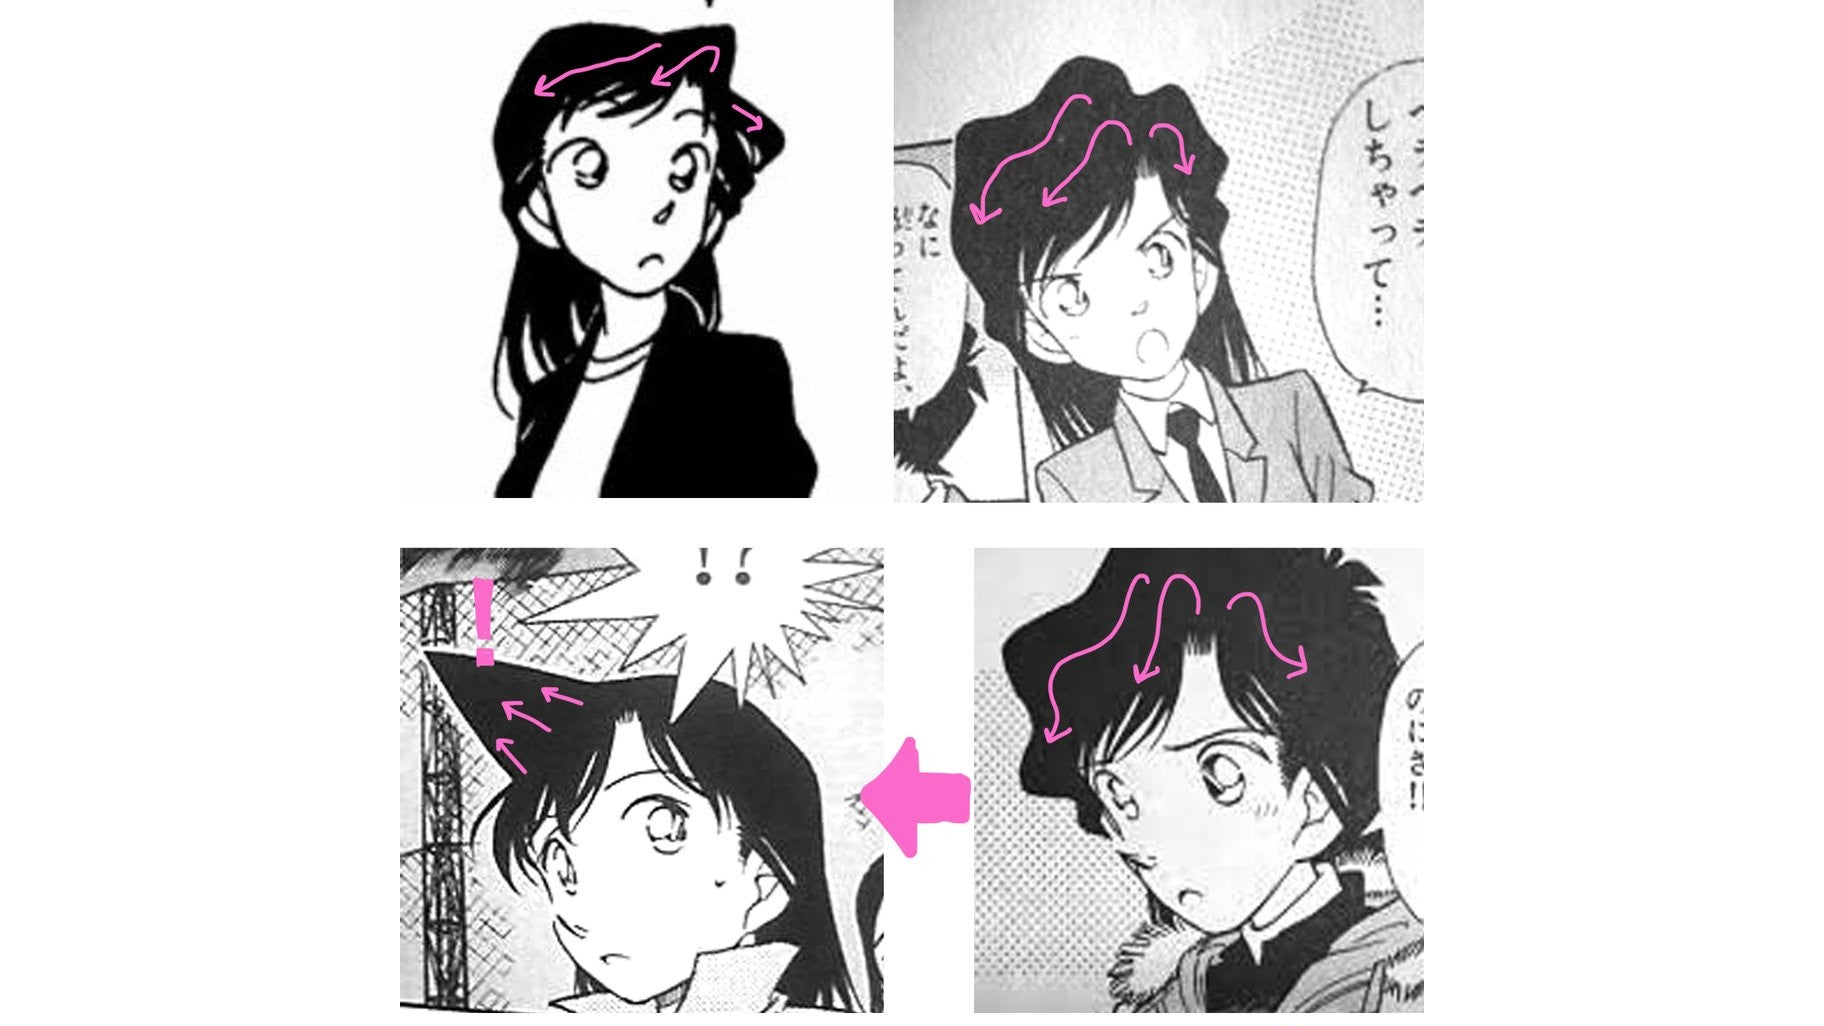 Trying to Explain a Strange Anime Hairstyle